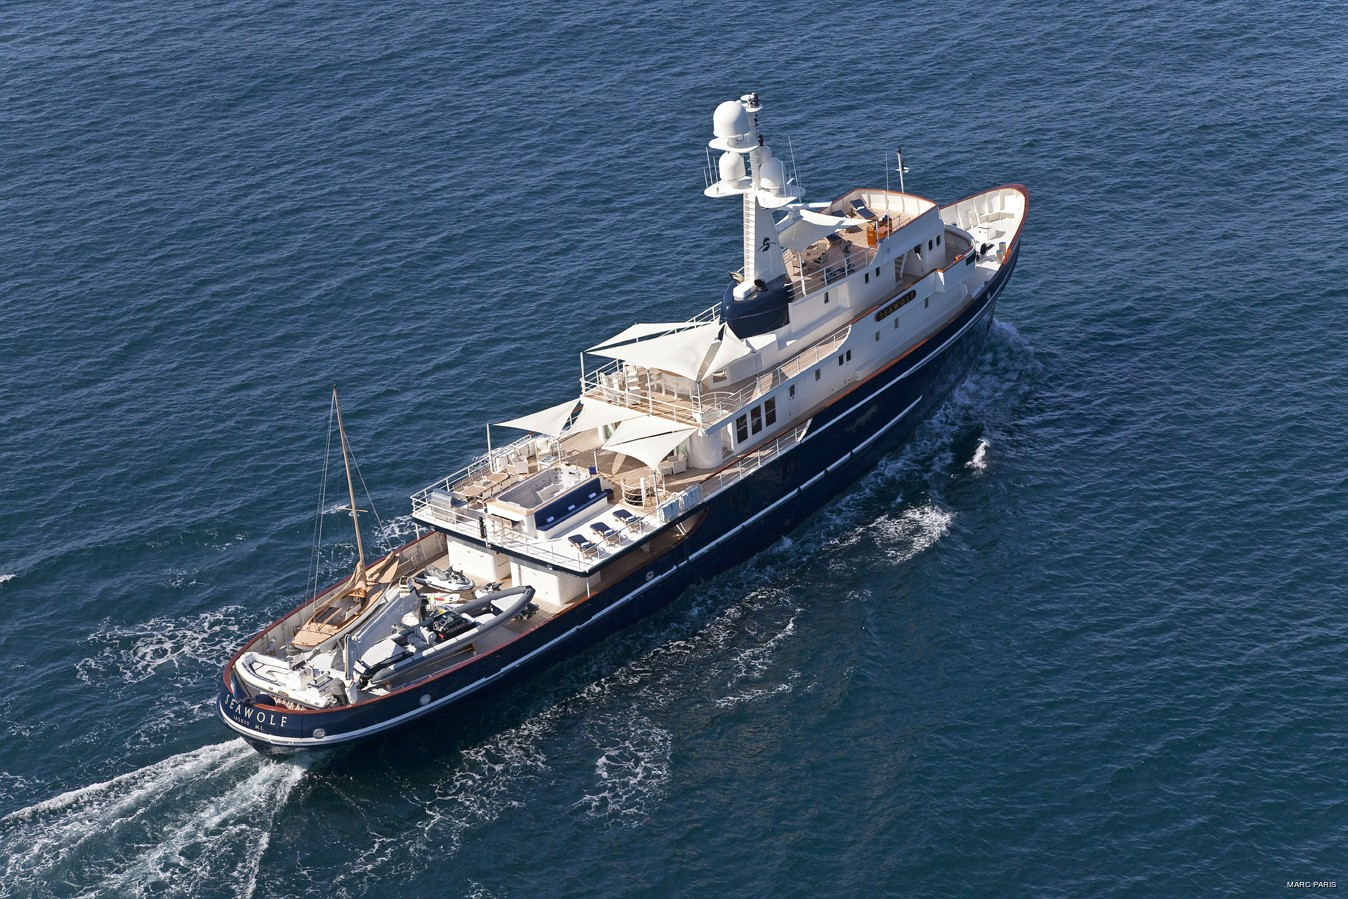 From Above: Yacht SEAWOLF's Cruising Pictured